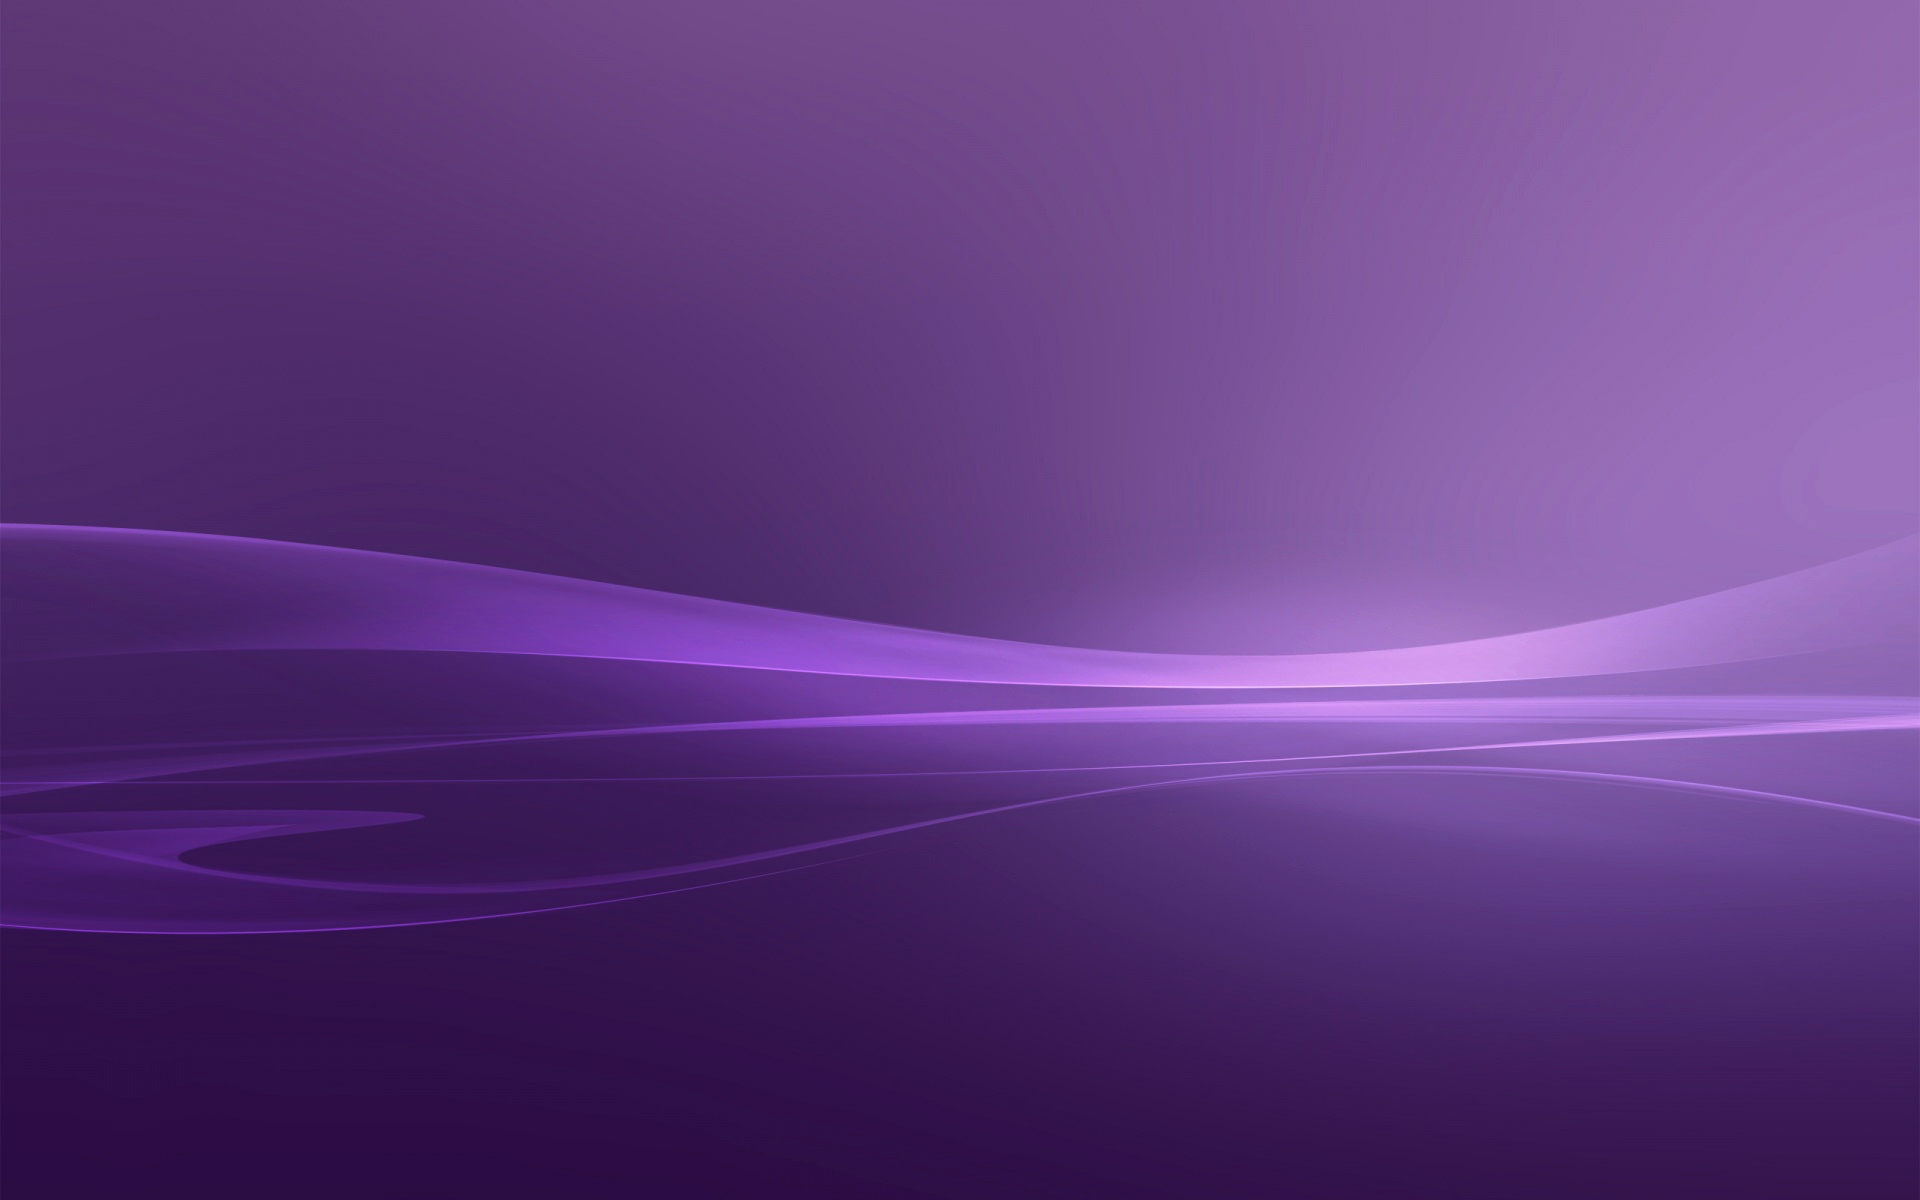 Wallpapers Tablet